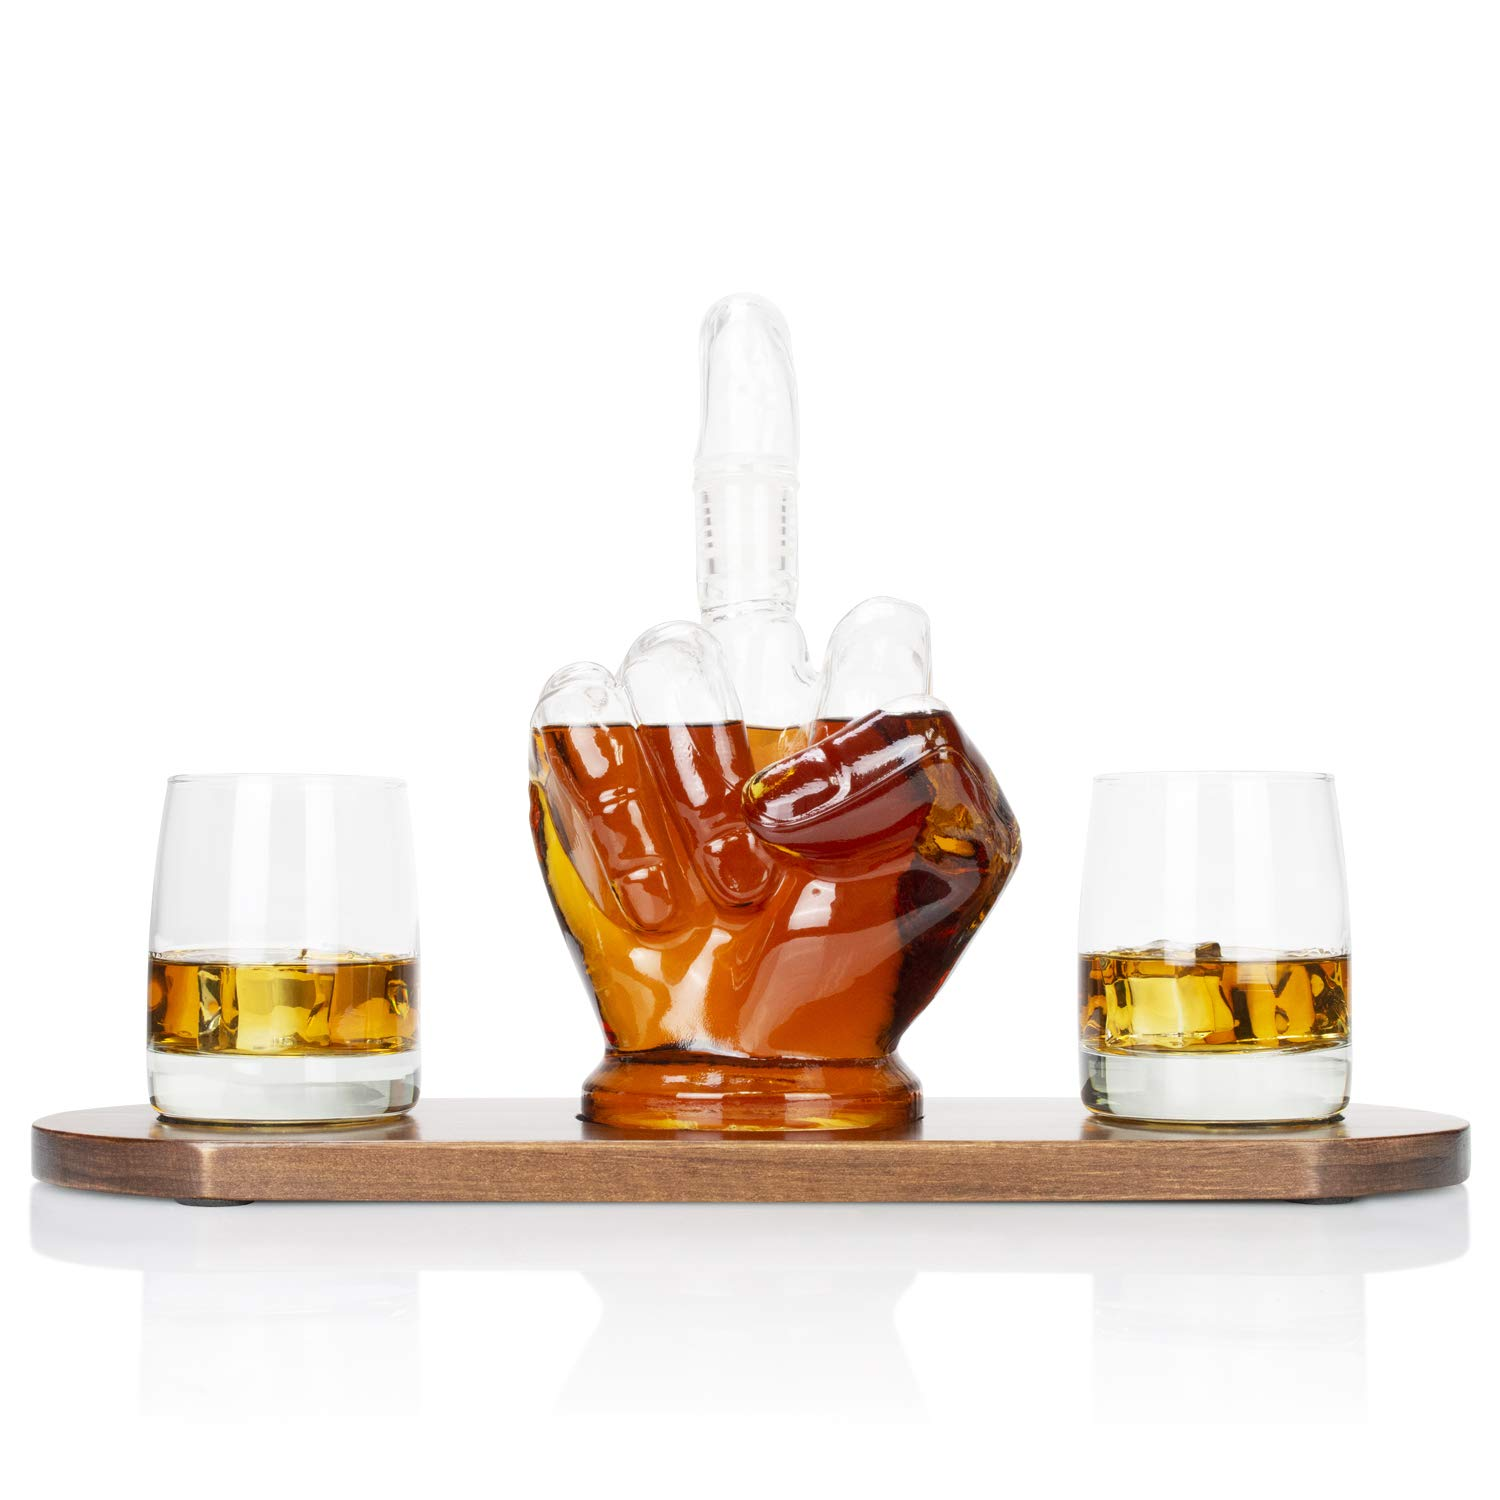 Atterstone Middle Finger 4 Piece Whiskey Decanter Bar Set, Includes Novelty 1000 ml Decanter with Removable Middle Finger Stopper, 2 Tumbler Drinking Glasses, and Wooden Base, 9.3 Inches x 4 inches